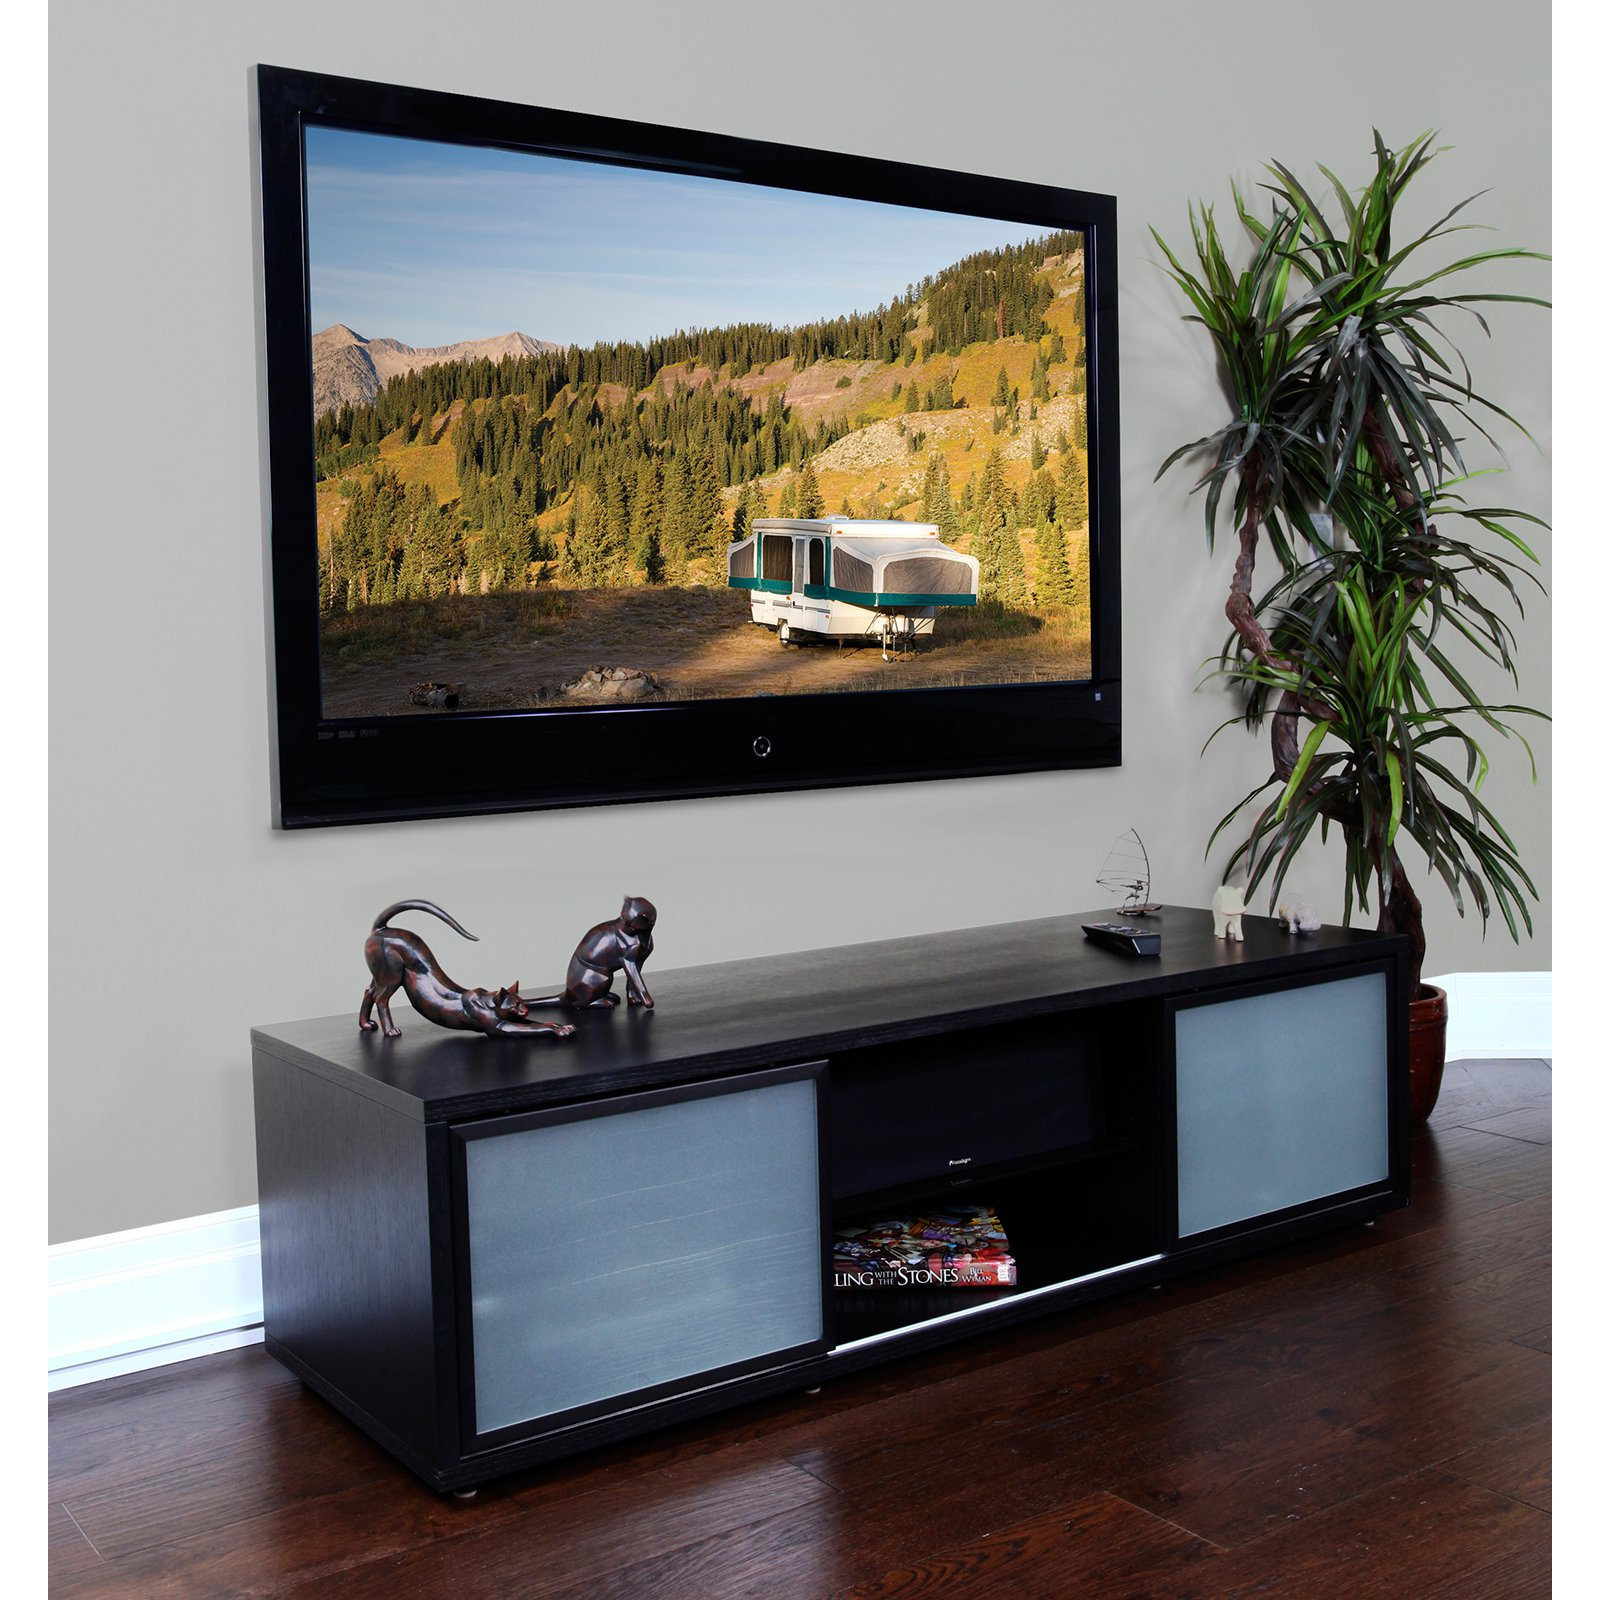 Audio and Video Credenza with Storage - holds up to 70 Inch TV